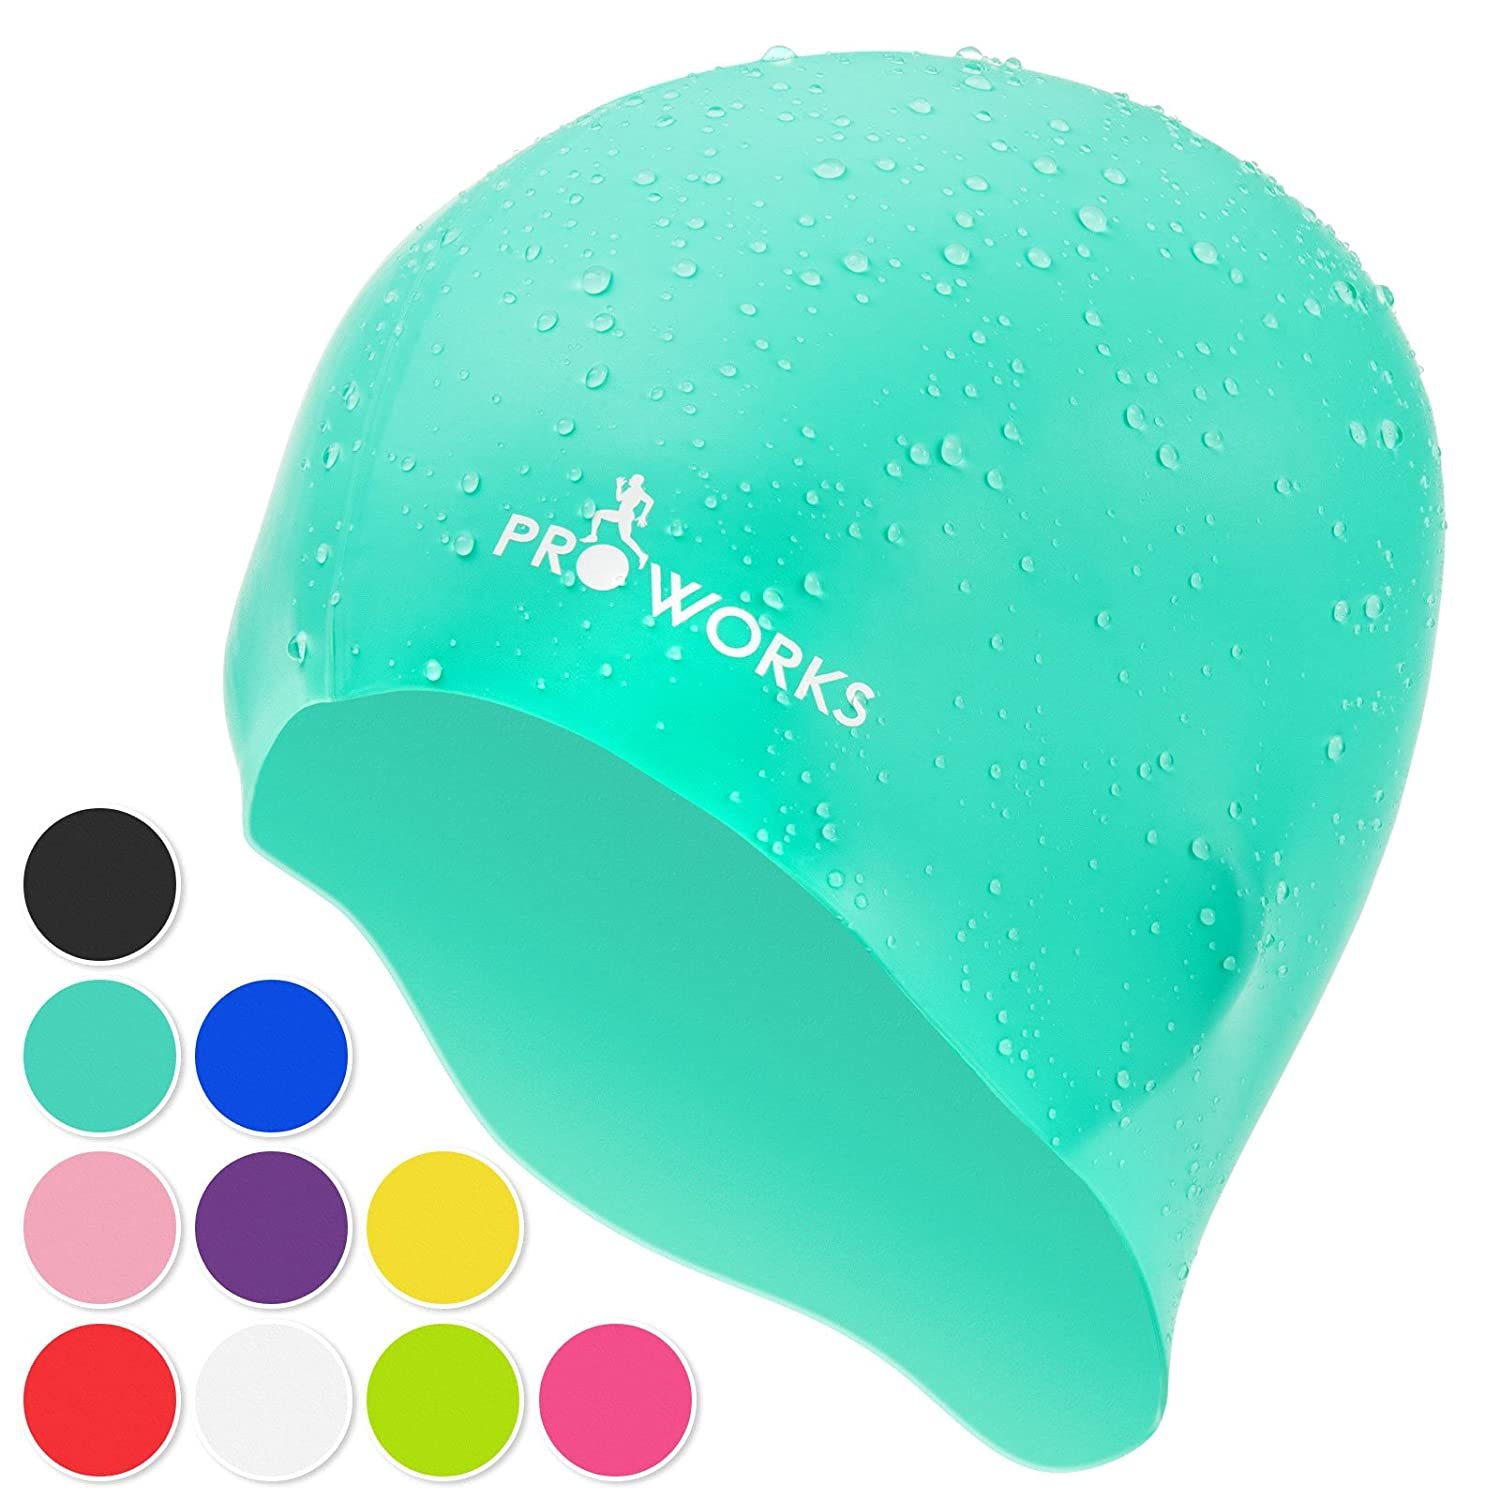 14a790f8851 Proworks Swimming Cap, Silicone Water Resistant Swim Cap for Adults, UV  Protective Swimwear, Bathing Caps Suitable for Men & Women: Amazon.co.uk:  Sports & ...